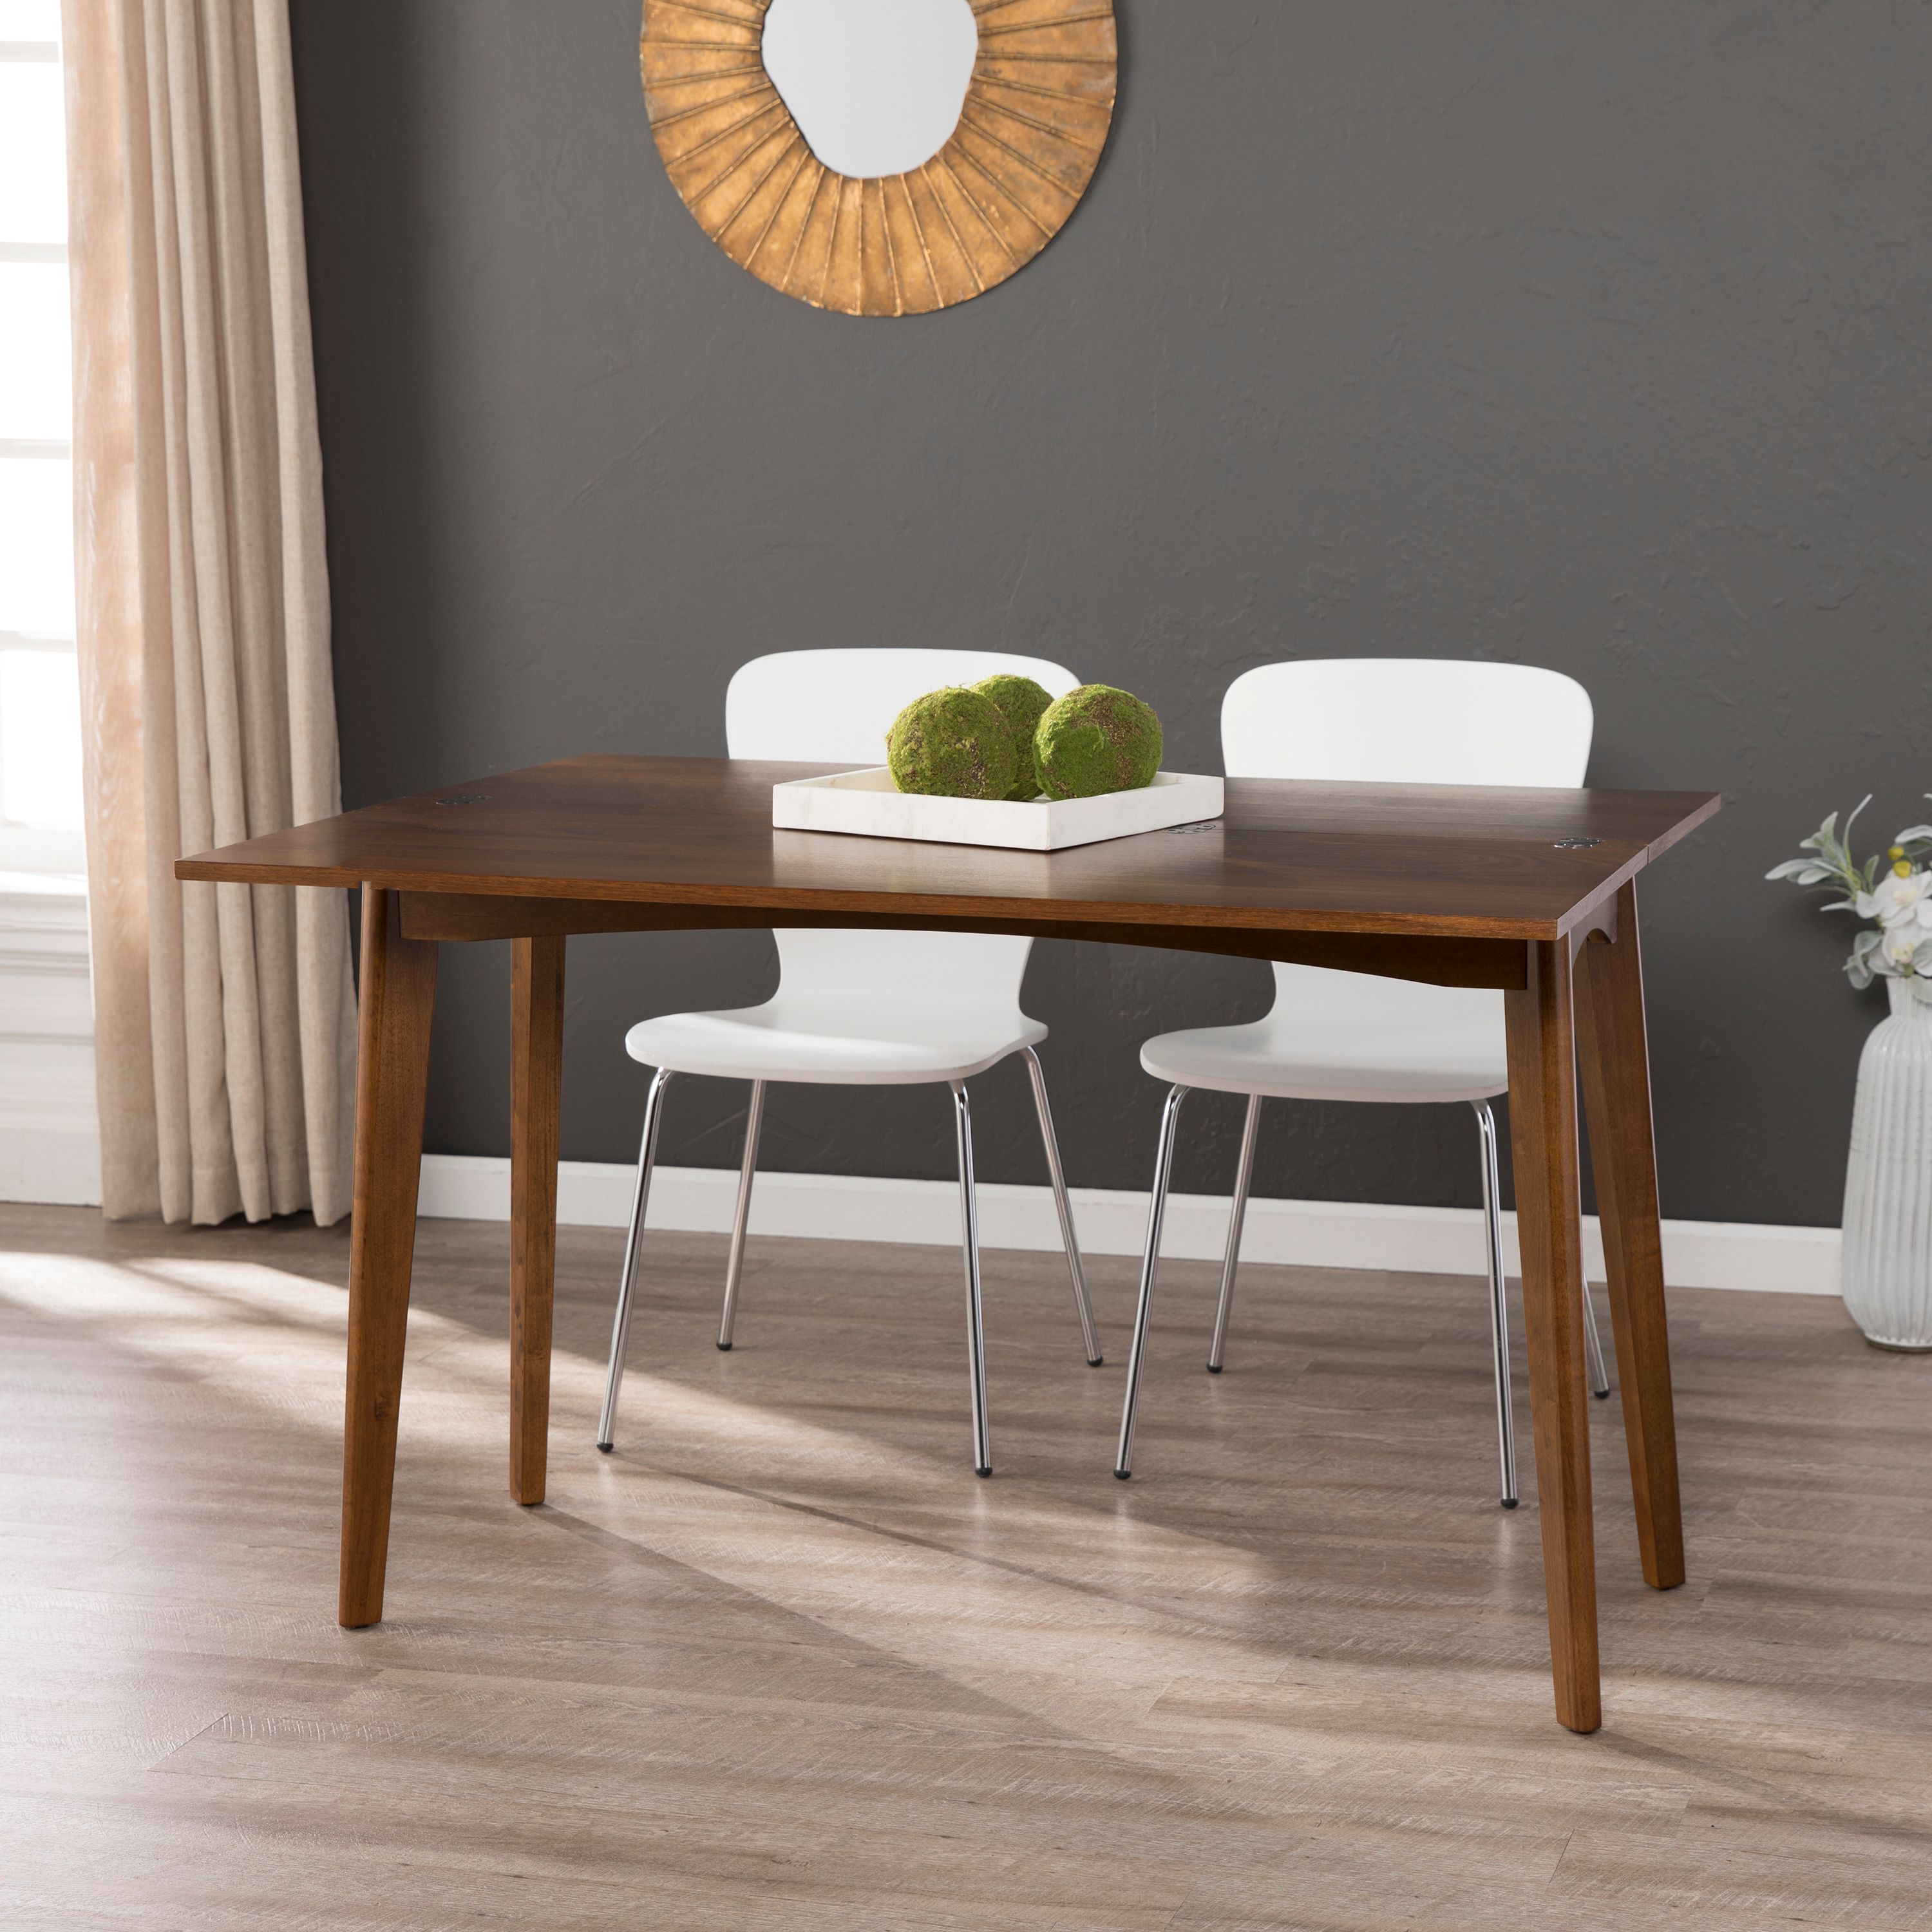 Vandil Convertible Console To Dining Table Midcentury Modern Whiskey Maple